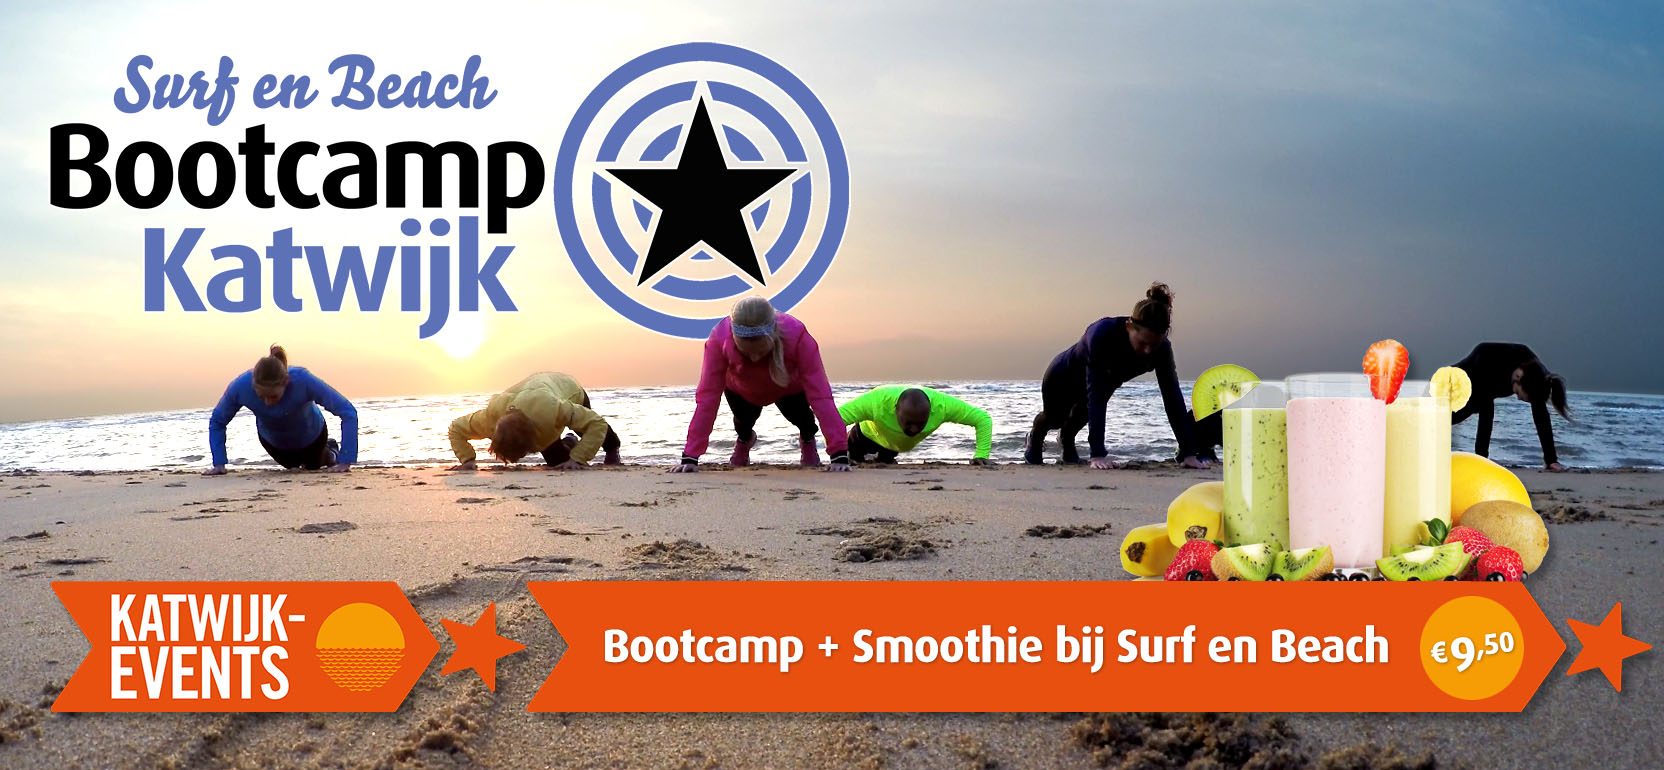 Surf en Beach Bootcamp Katwijk Events